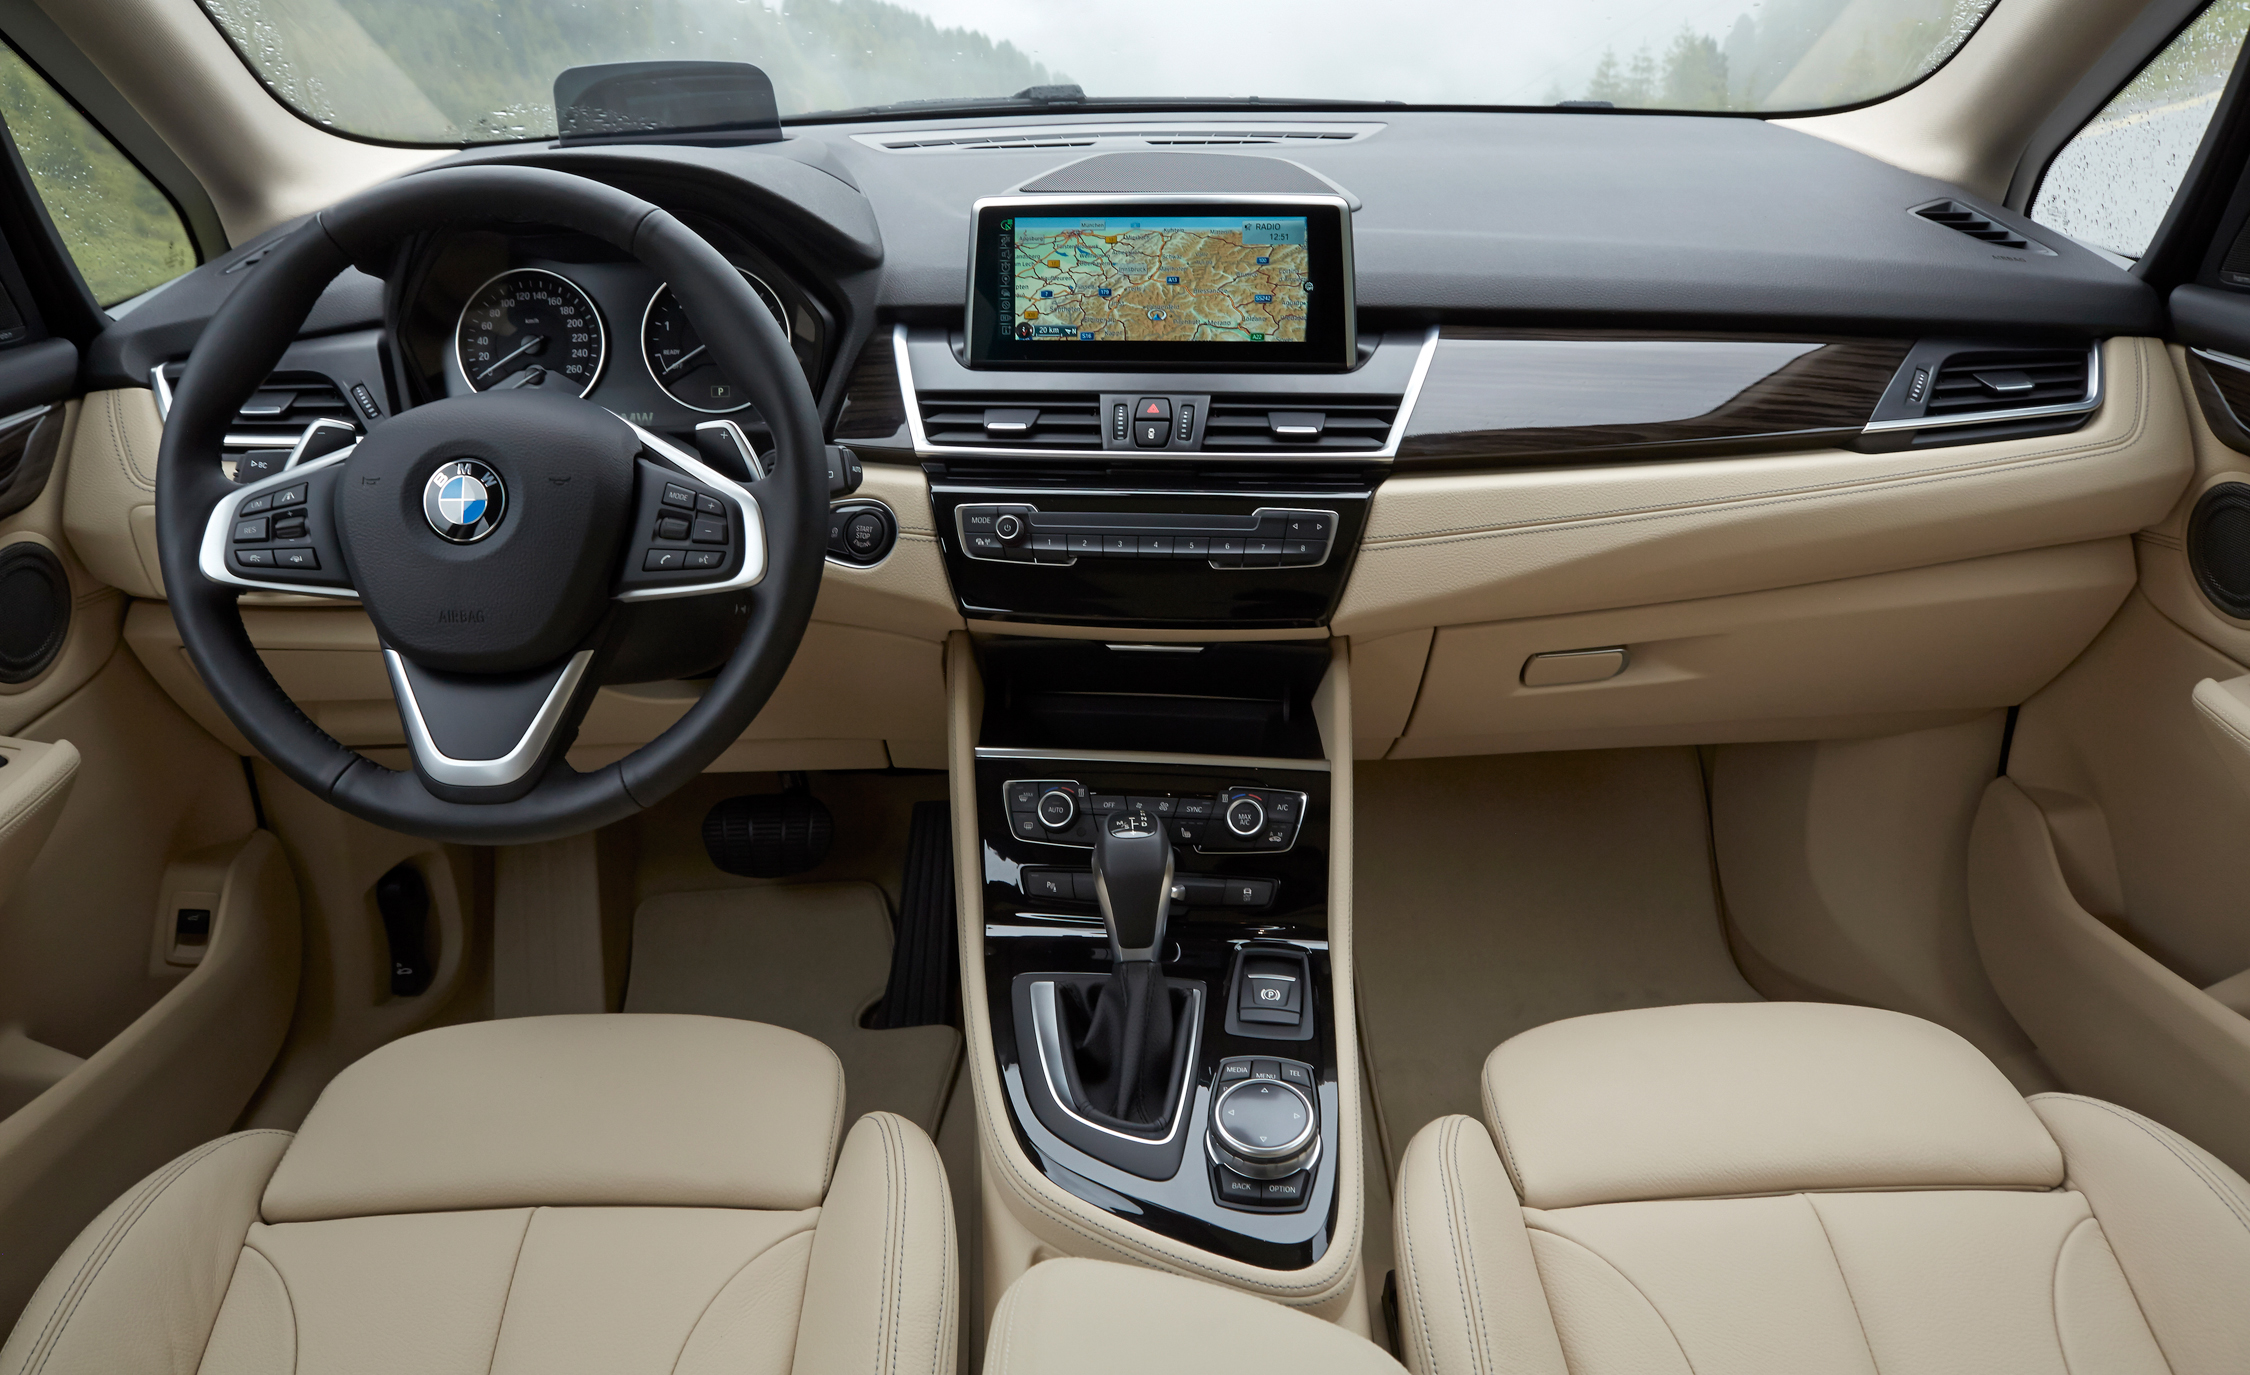 2015 BMW 225i Active Tourer (Euro Spec) Interior (Photo 10 of 14)